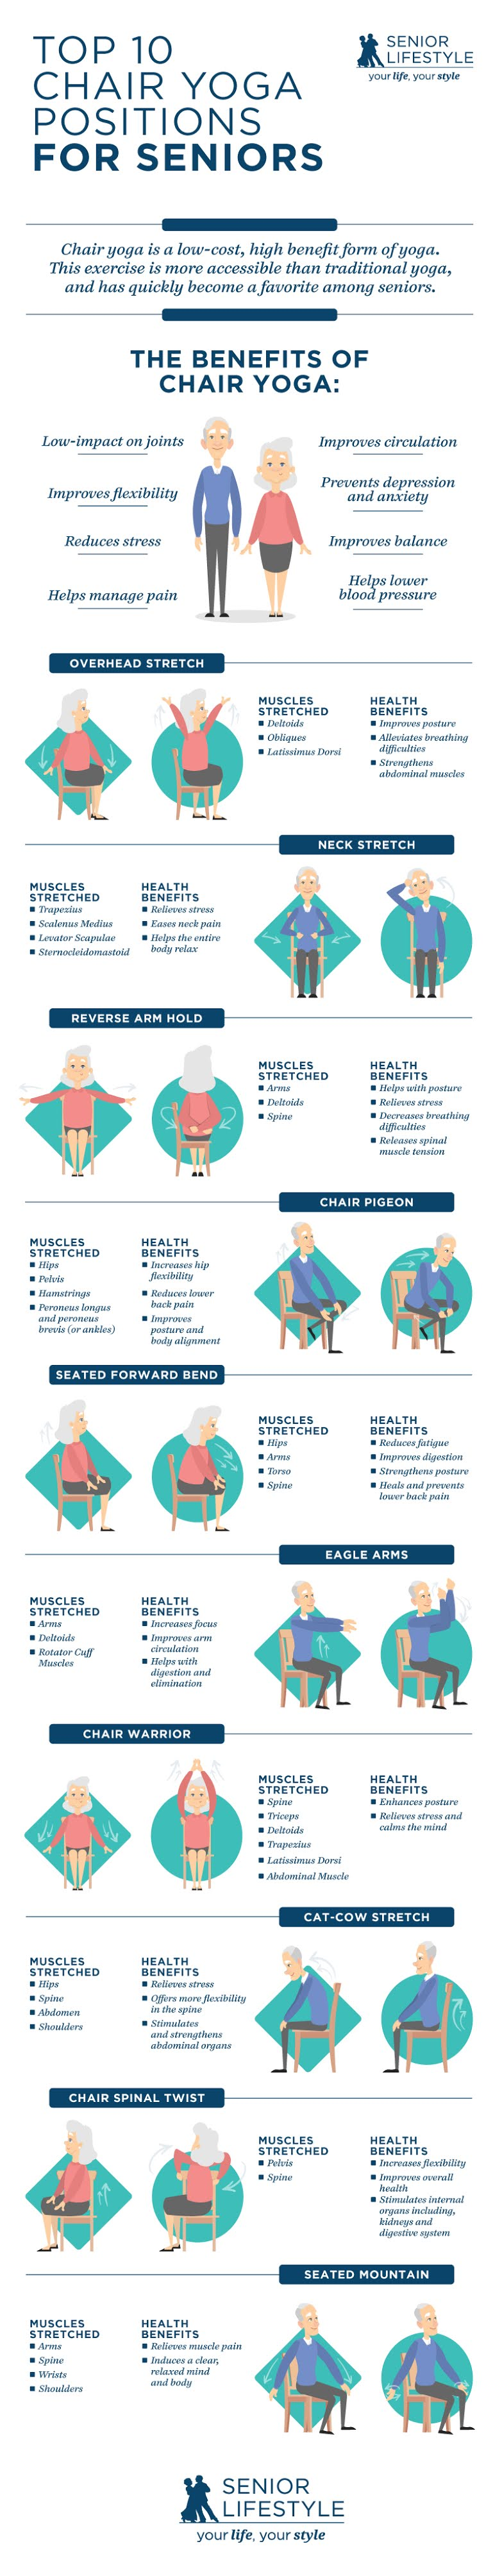 Top 10 Chair Yoga Positions for Seniors #infographic